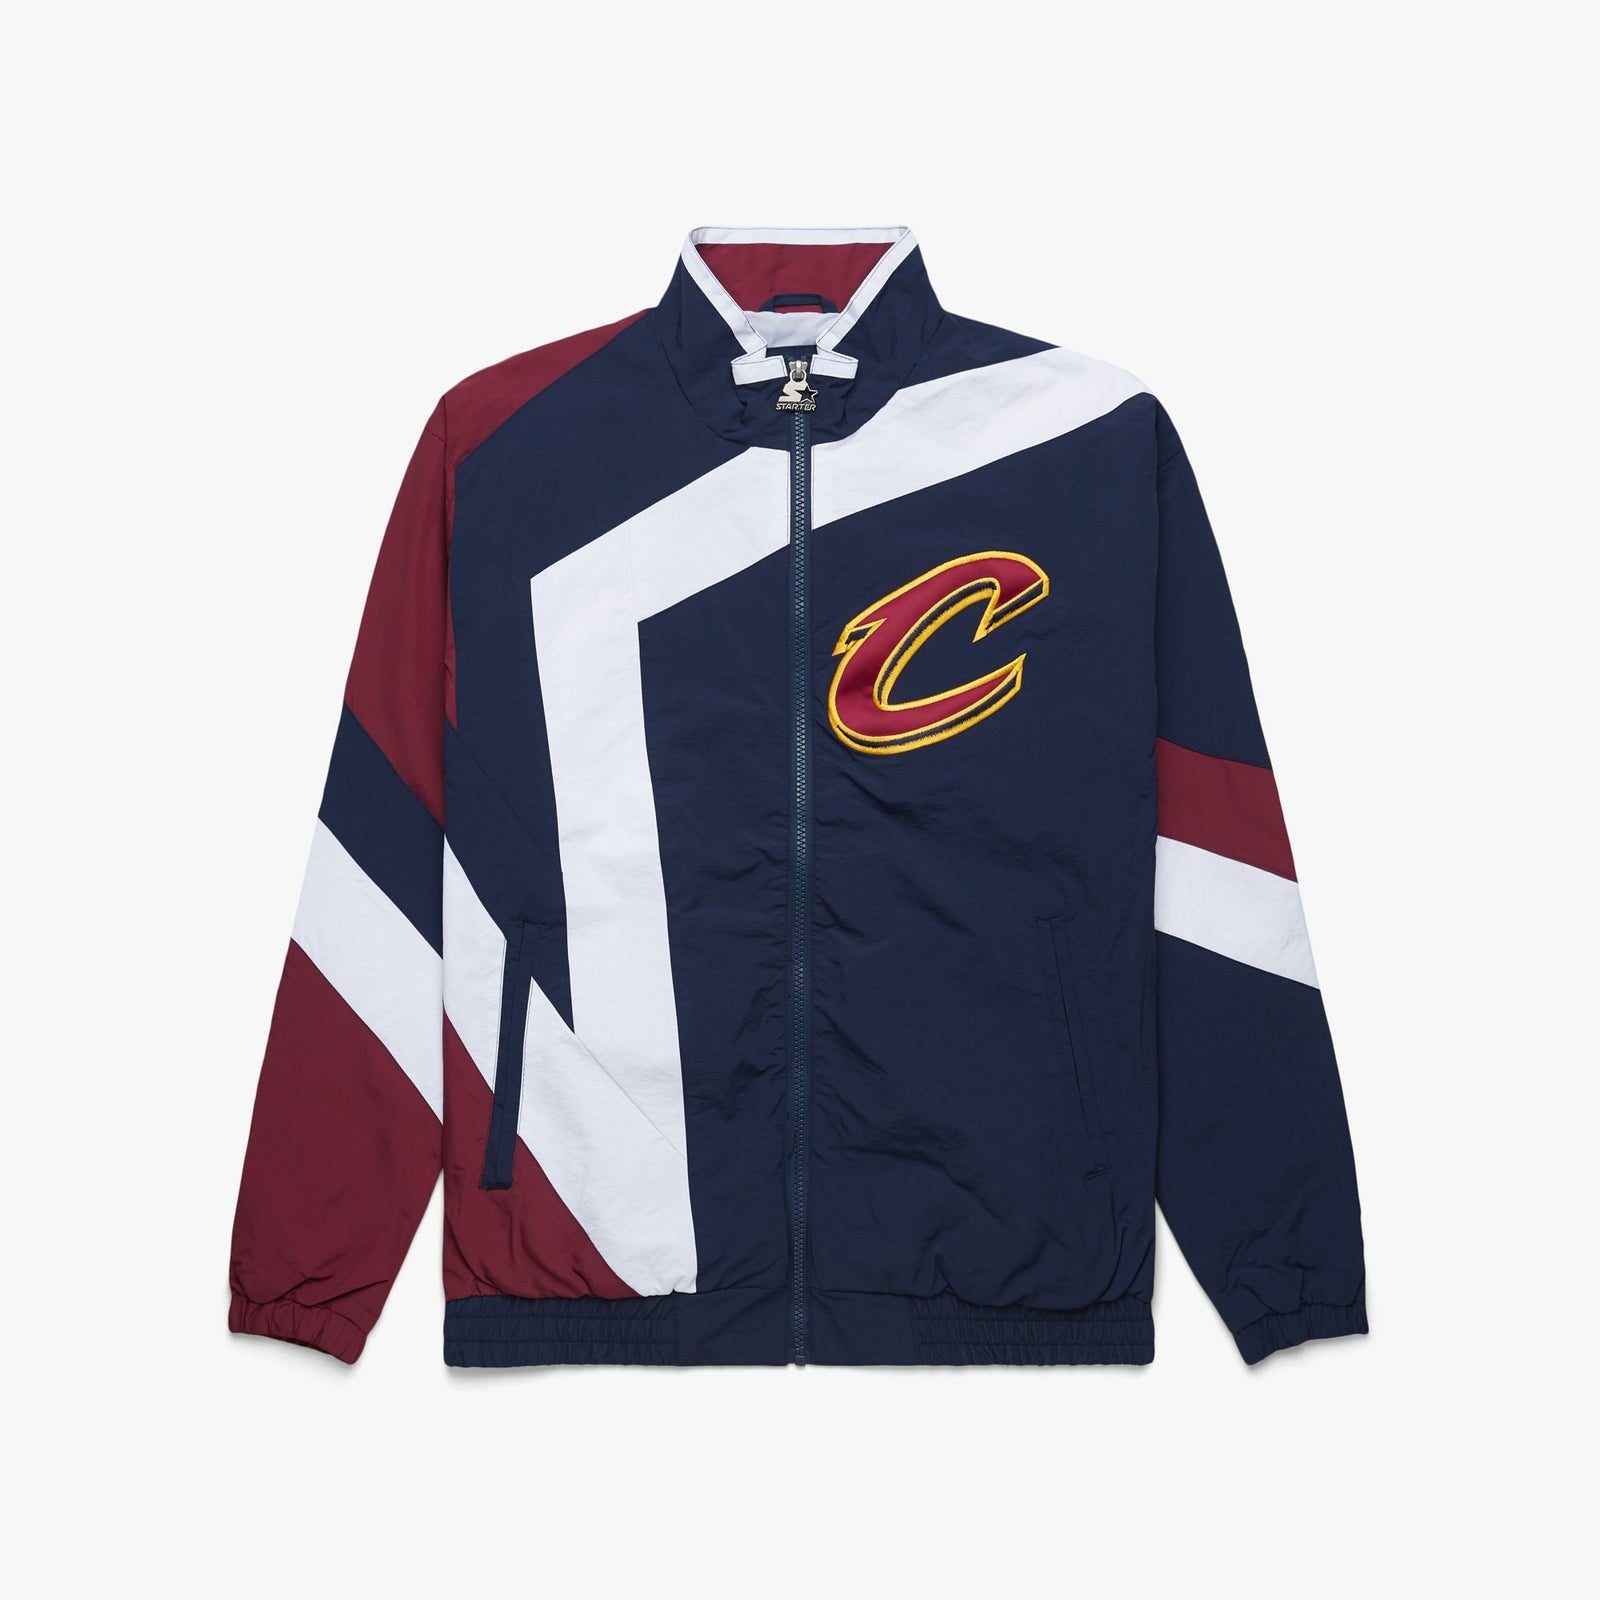 HOMAGE x Starter NBA Cavaliers Warmup Jacket